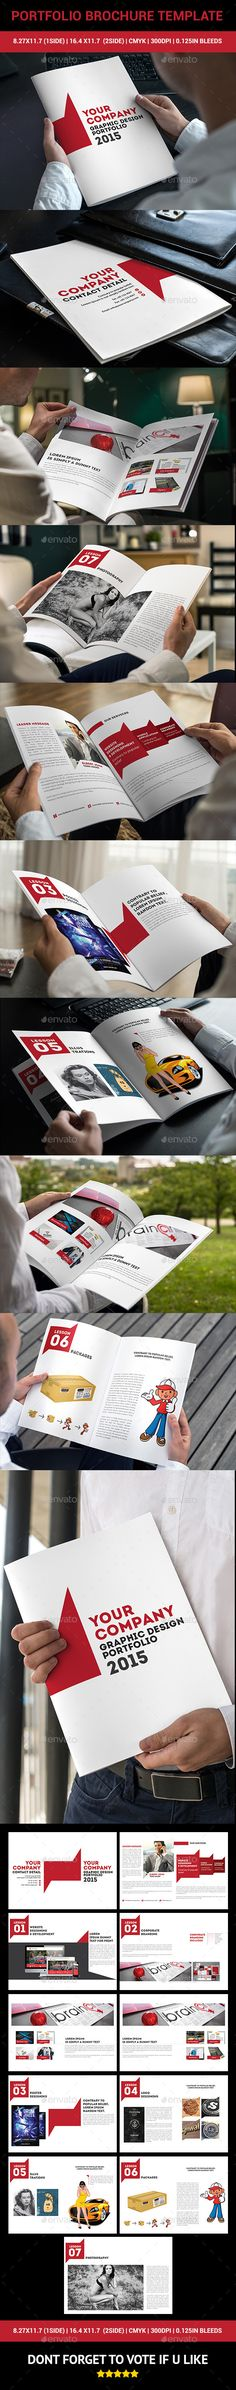 Lookbook  Fashion Magazine  Catalogue  Brochure Indesign